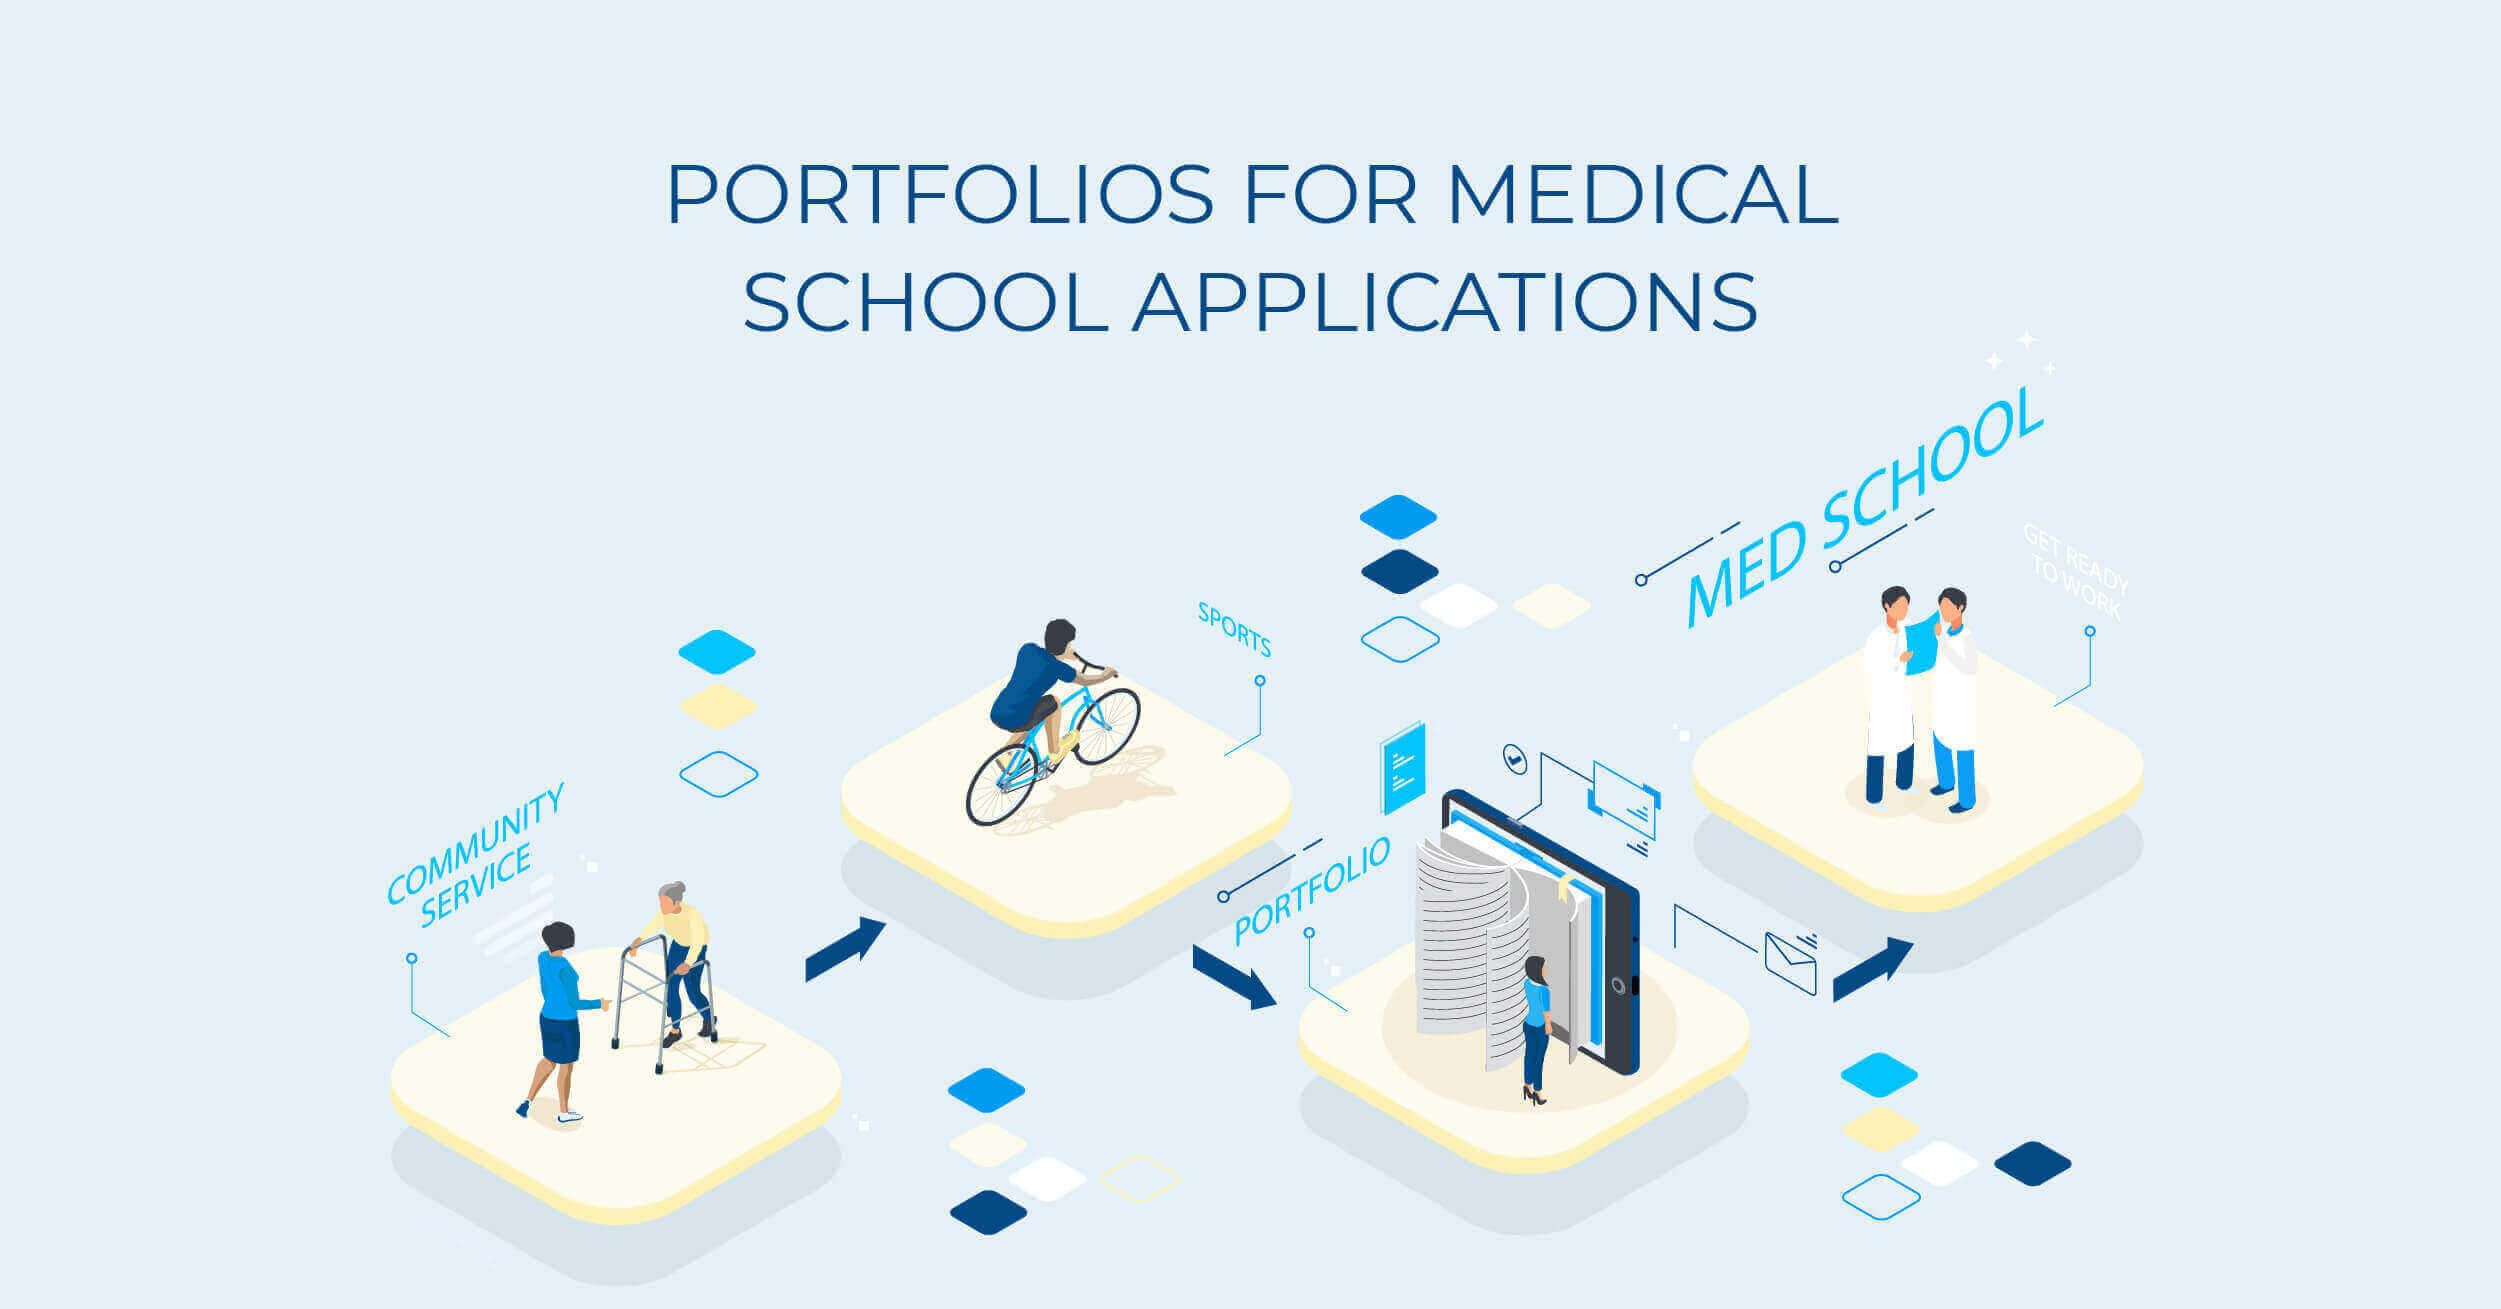 How to Make a Portfolio for Medical School Applications featured image